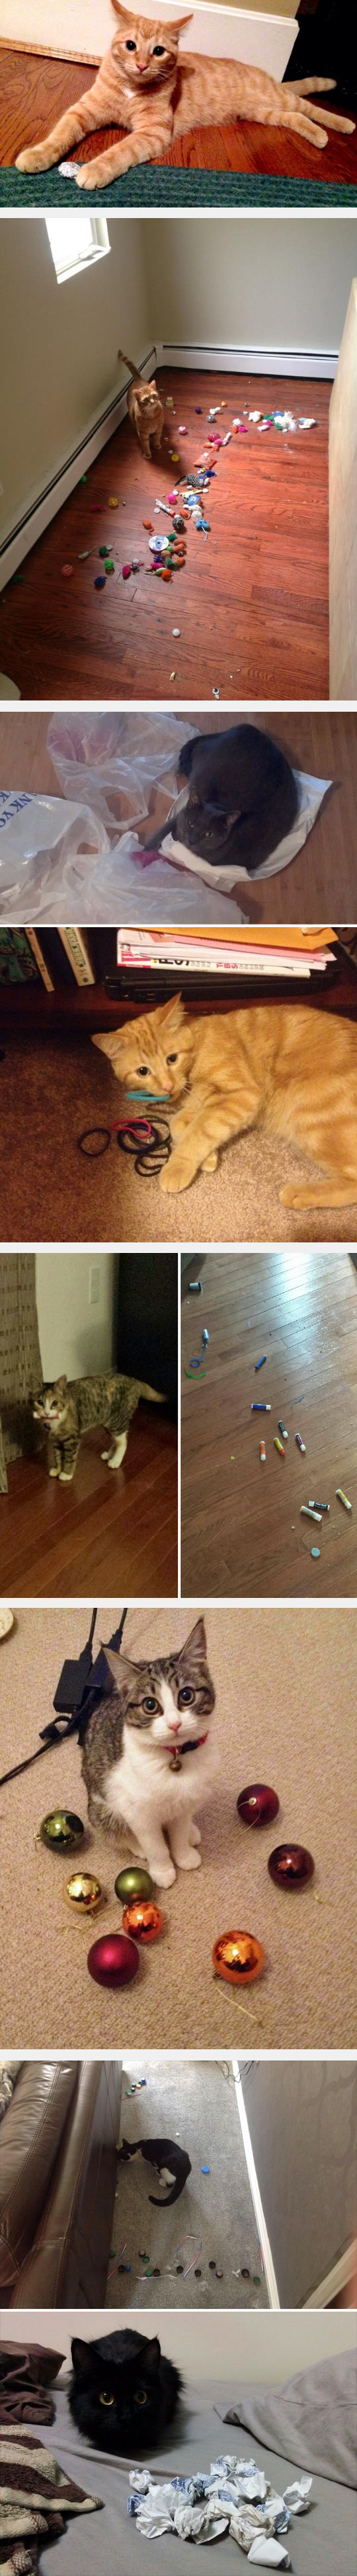 2funny-cat-hoarding-things-issues-christmas-balls